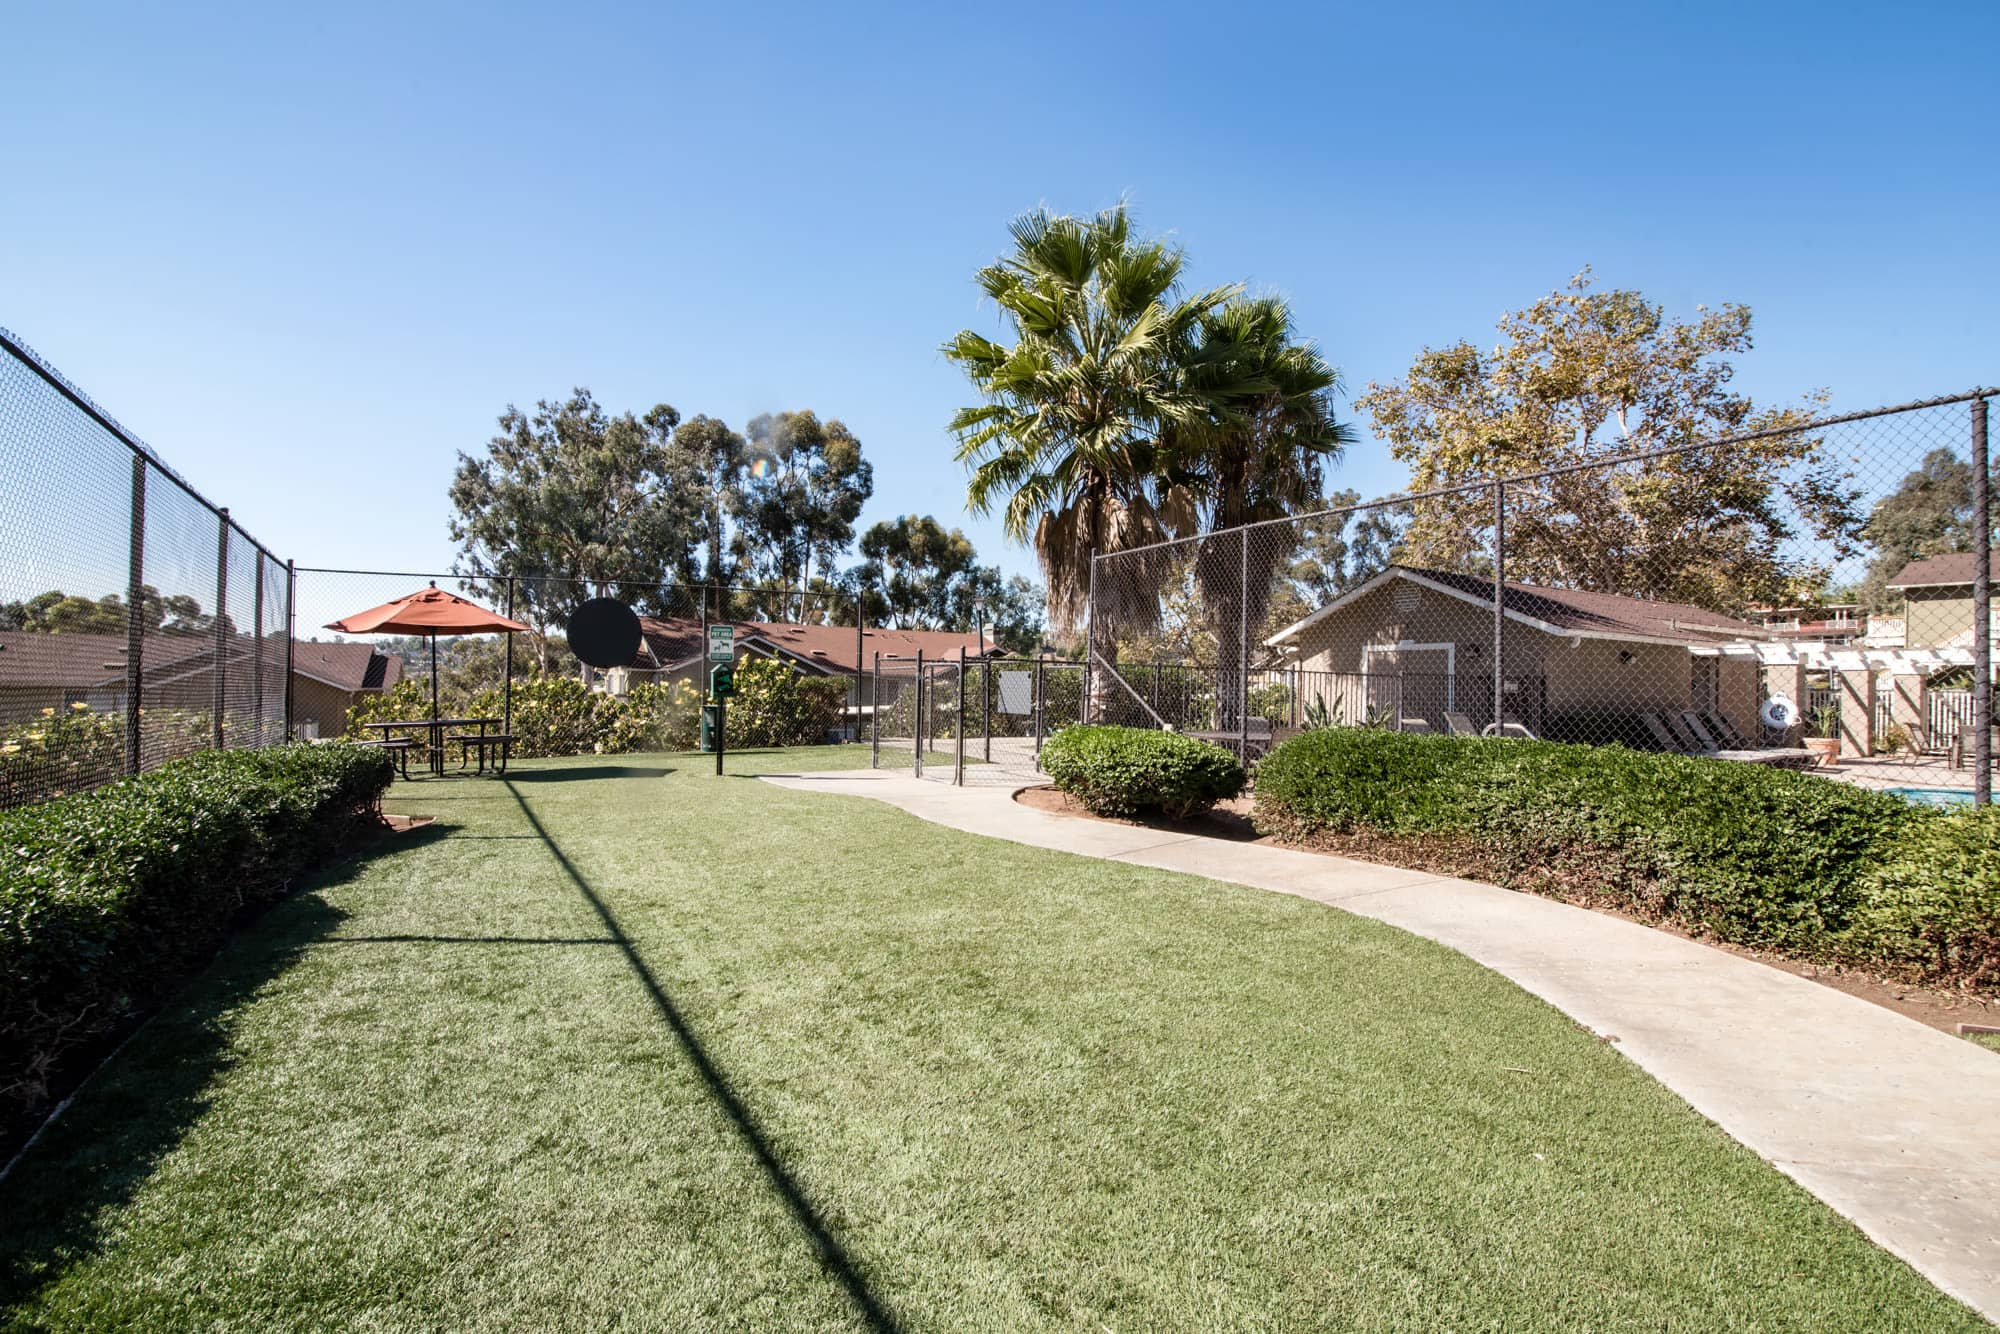 Off-leash dog park at Lakeview Village Apartments in Spring Valley, California